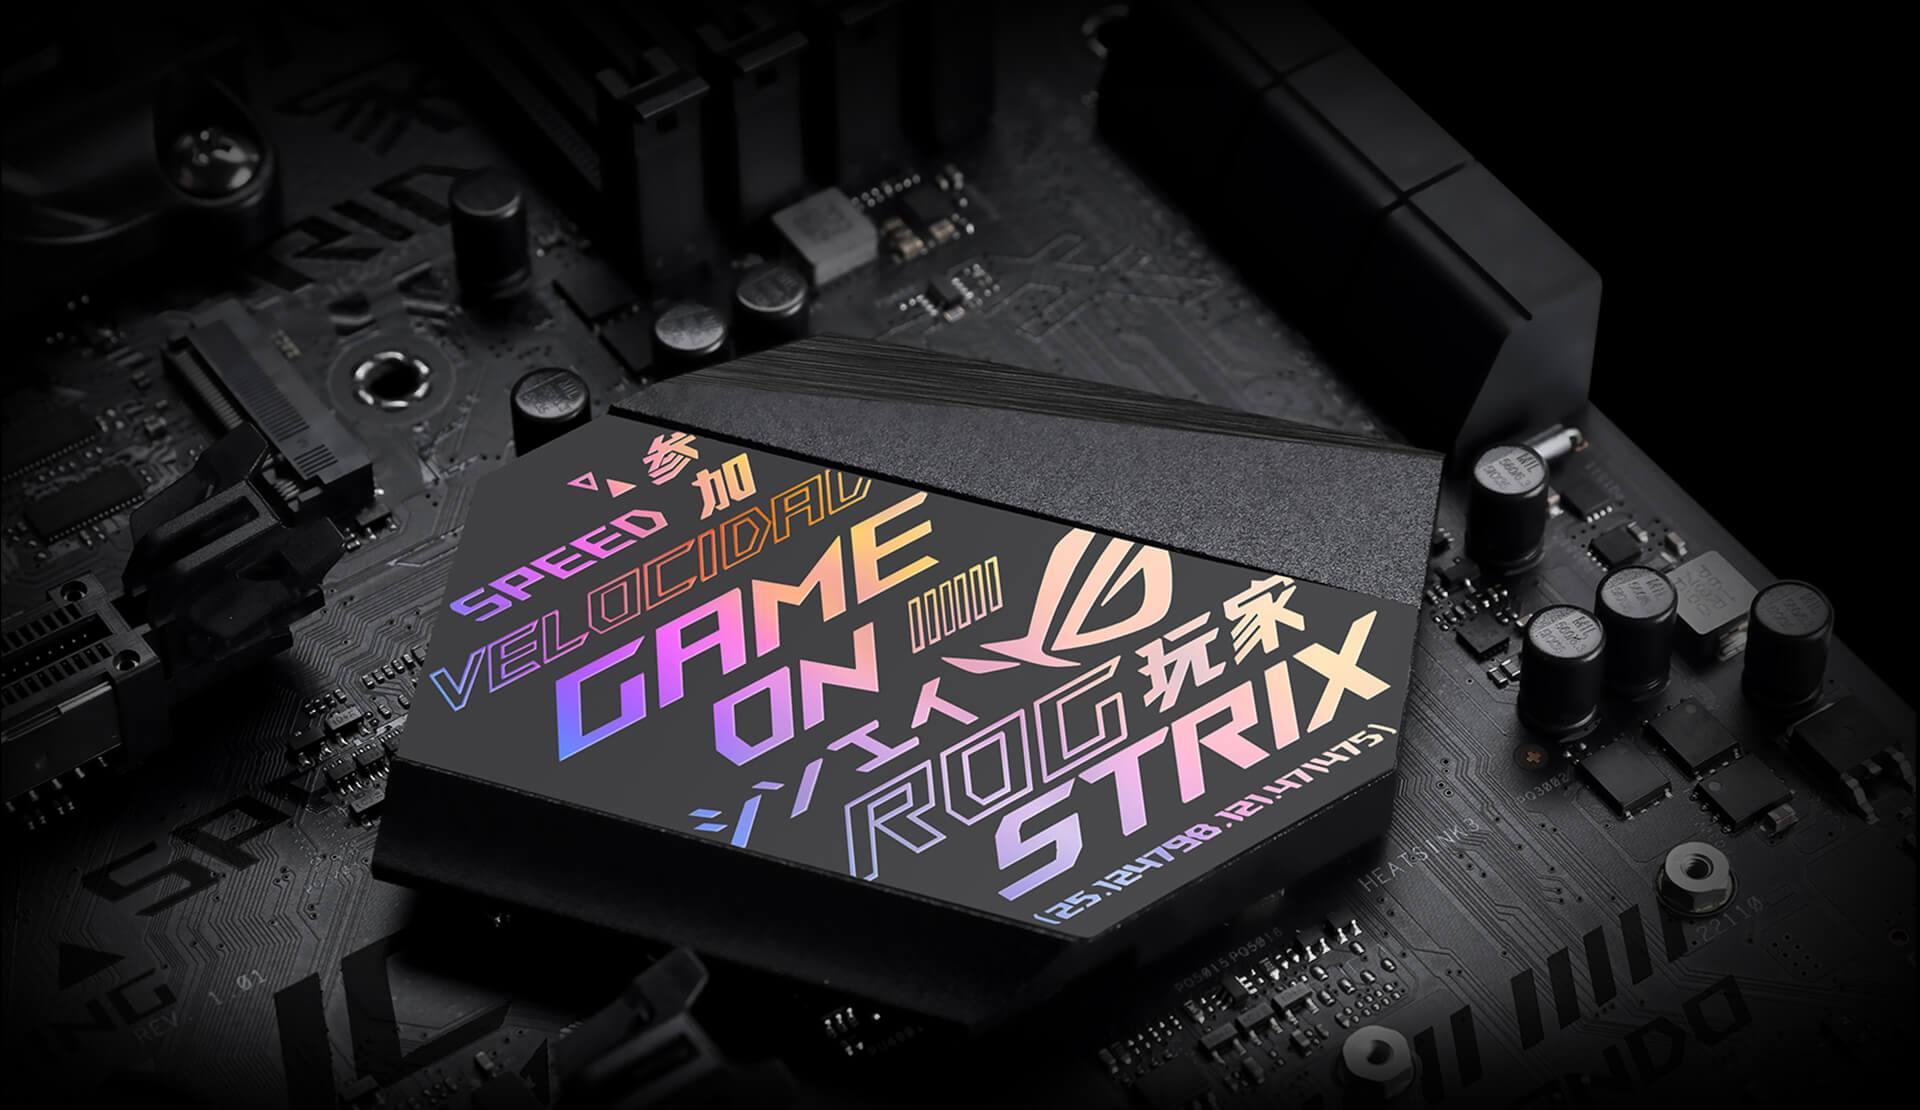 內外兼修:ASUS發布ROG STRIX B450-F GAMING主機板 - XFastest - slideshow-2.jpg